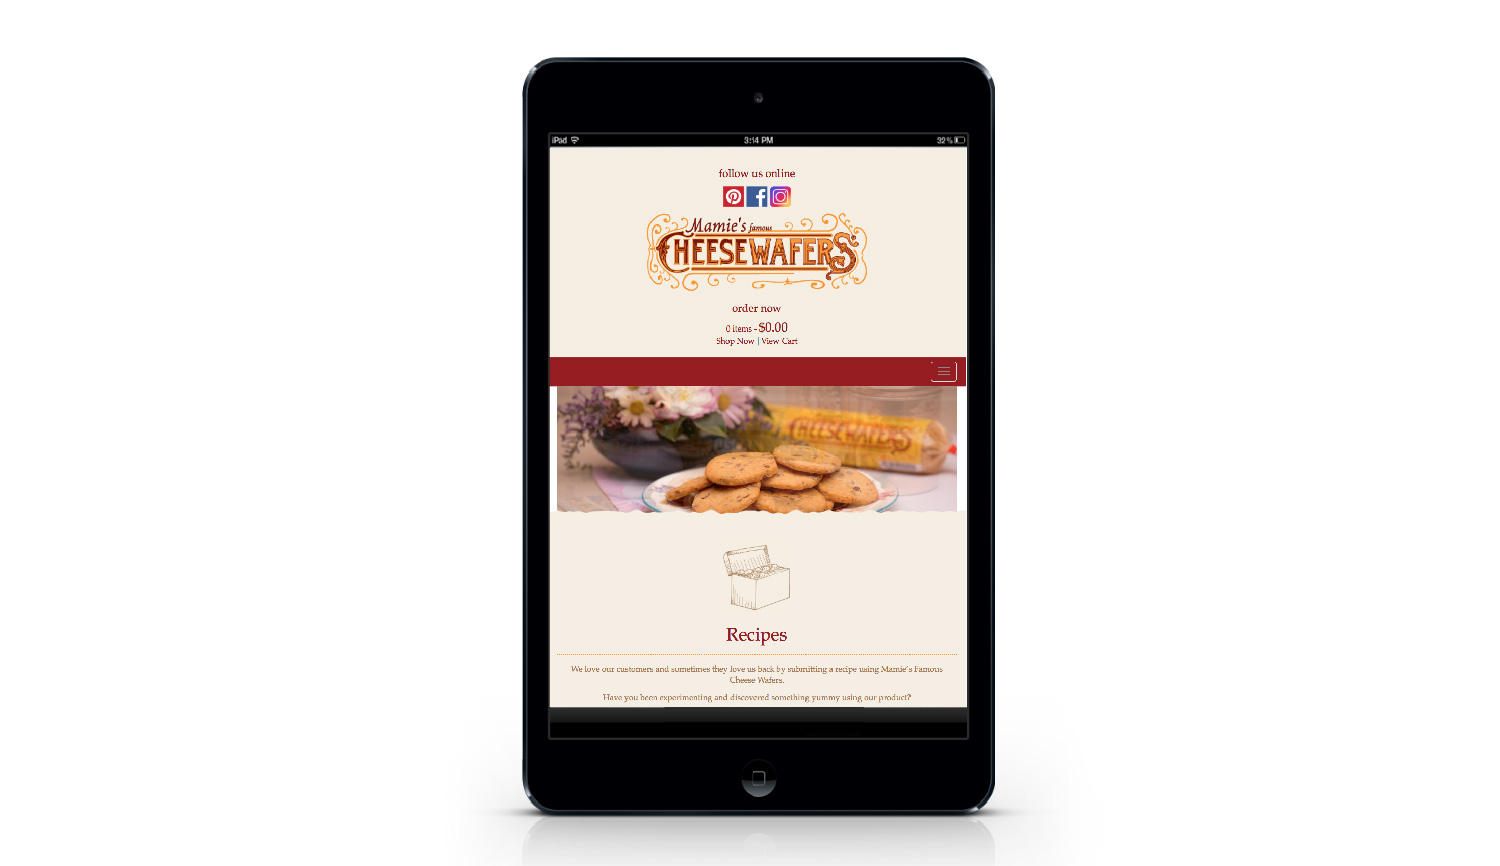 Mamie's Wafers tablet view